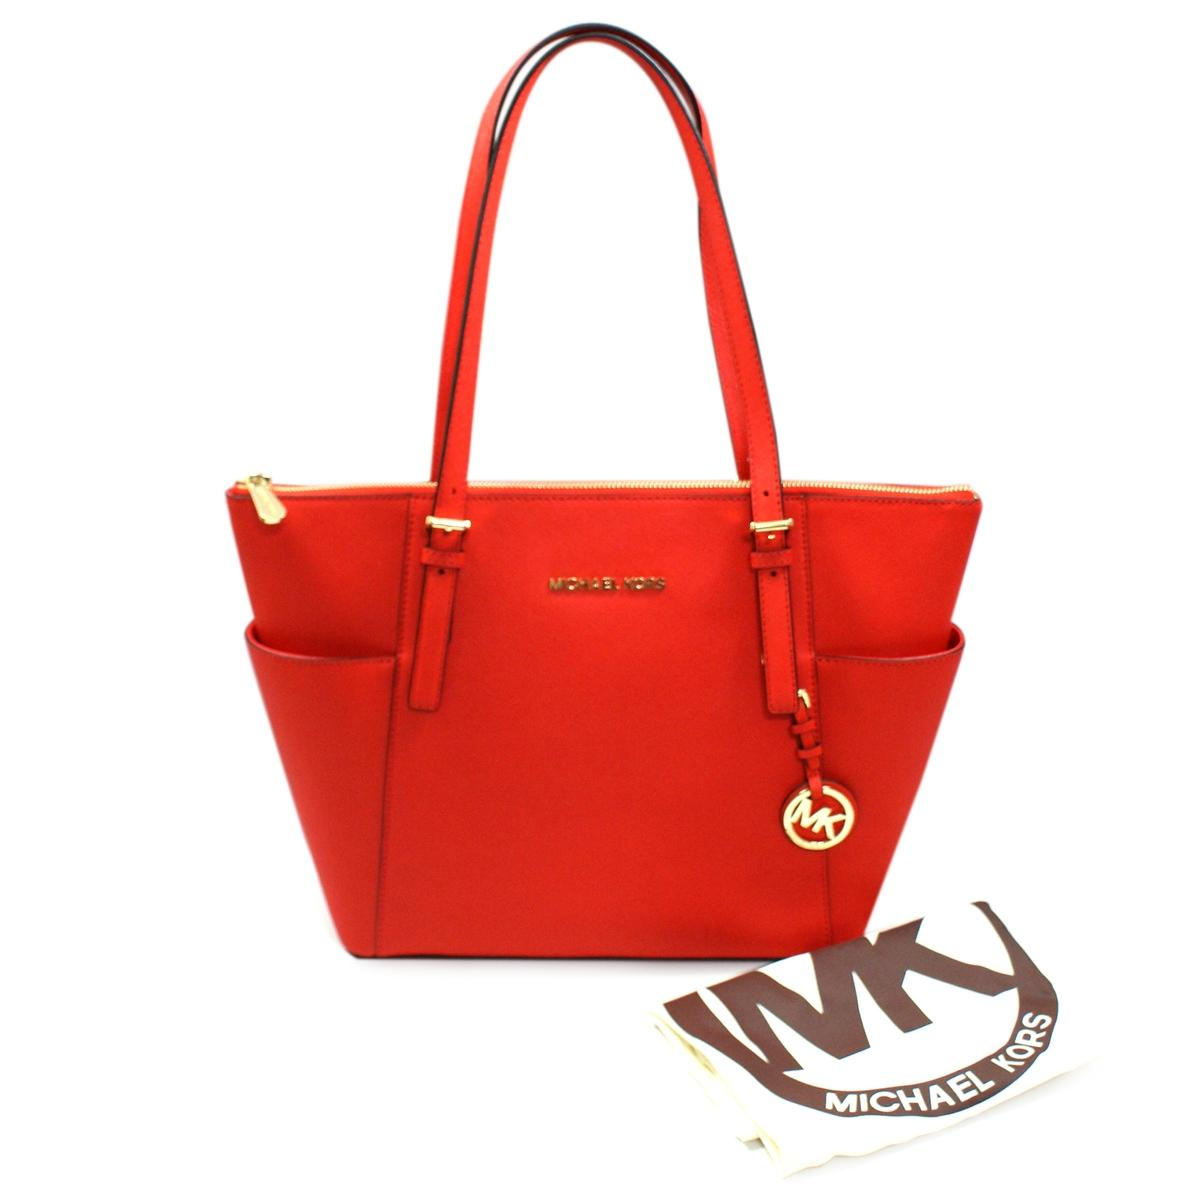 2c48cf243e252 Home · Michael Kors · Jet Set East West Genuine Leather Tote Mandarin. CLICK  THUMBNAIL TO ZOOM. Found ...